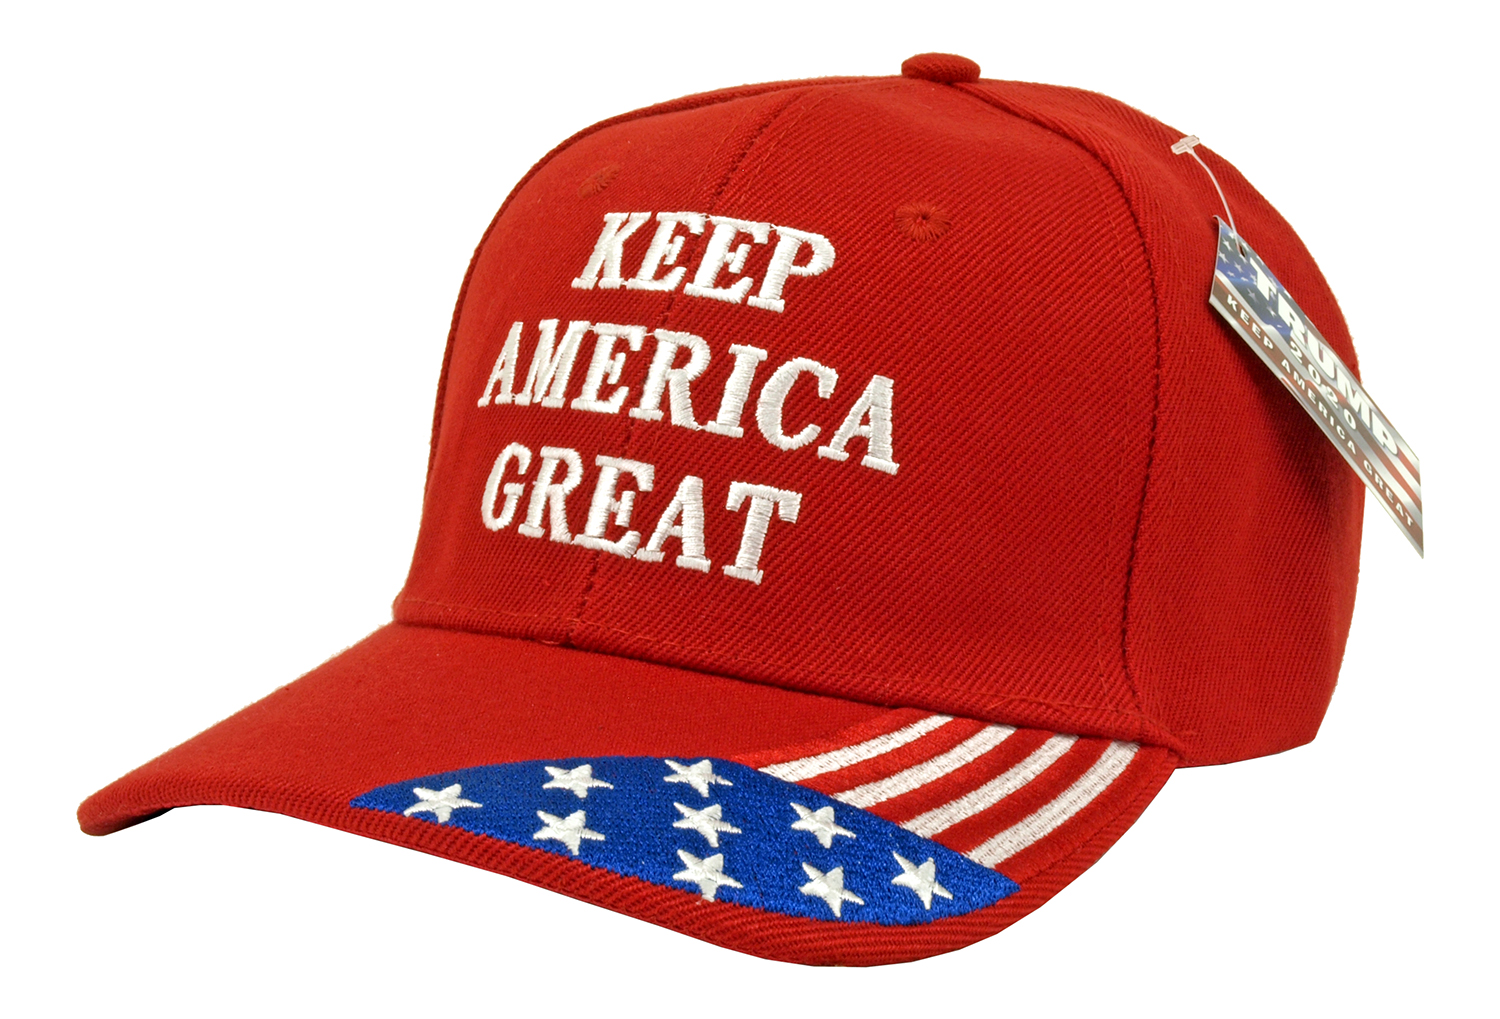 12 - pc. Trump Keep America Great with Flag Adjustable Hat - Assorted Colors